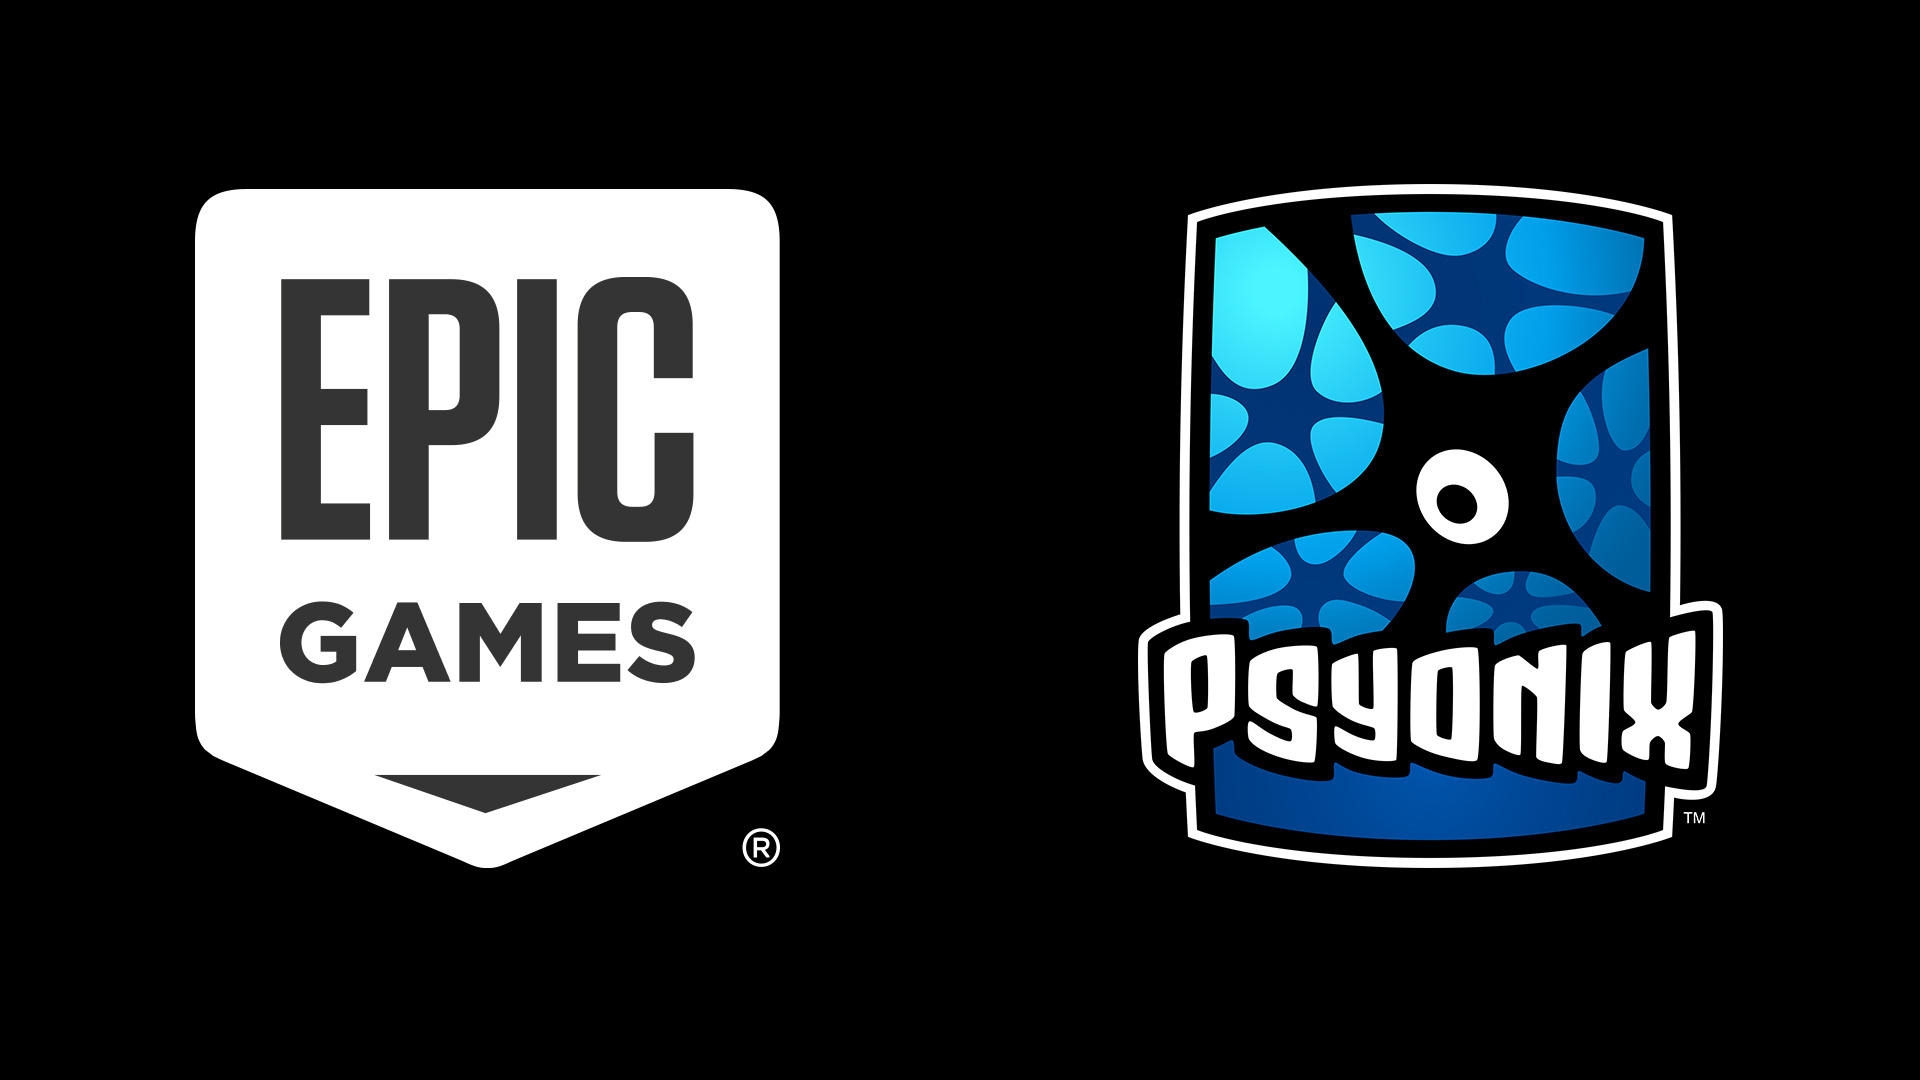 Epic Games buys Rocket League Developer